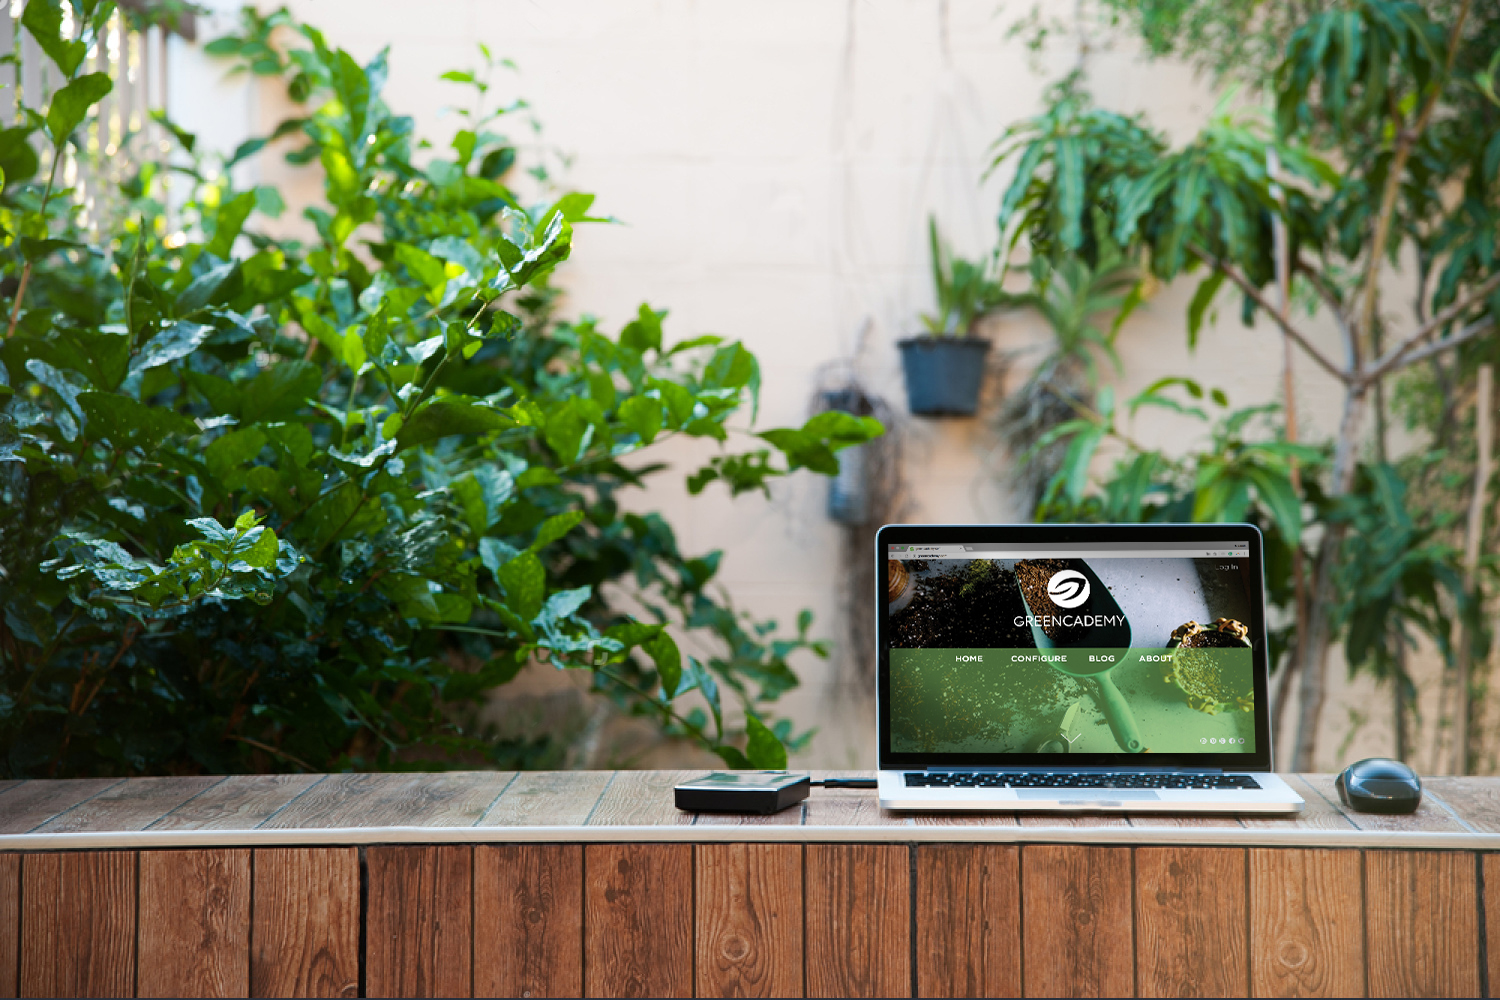 stock-photo-laptop-computer-mock-up-with-hard-disk-on-wood-texture-in-garden-right-of-frame-relax-from-work-361410482-2.jpg